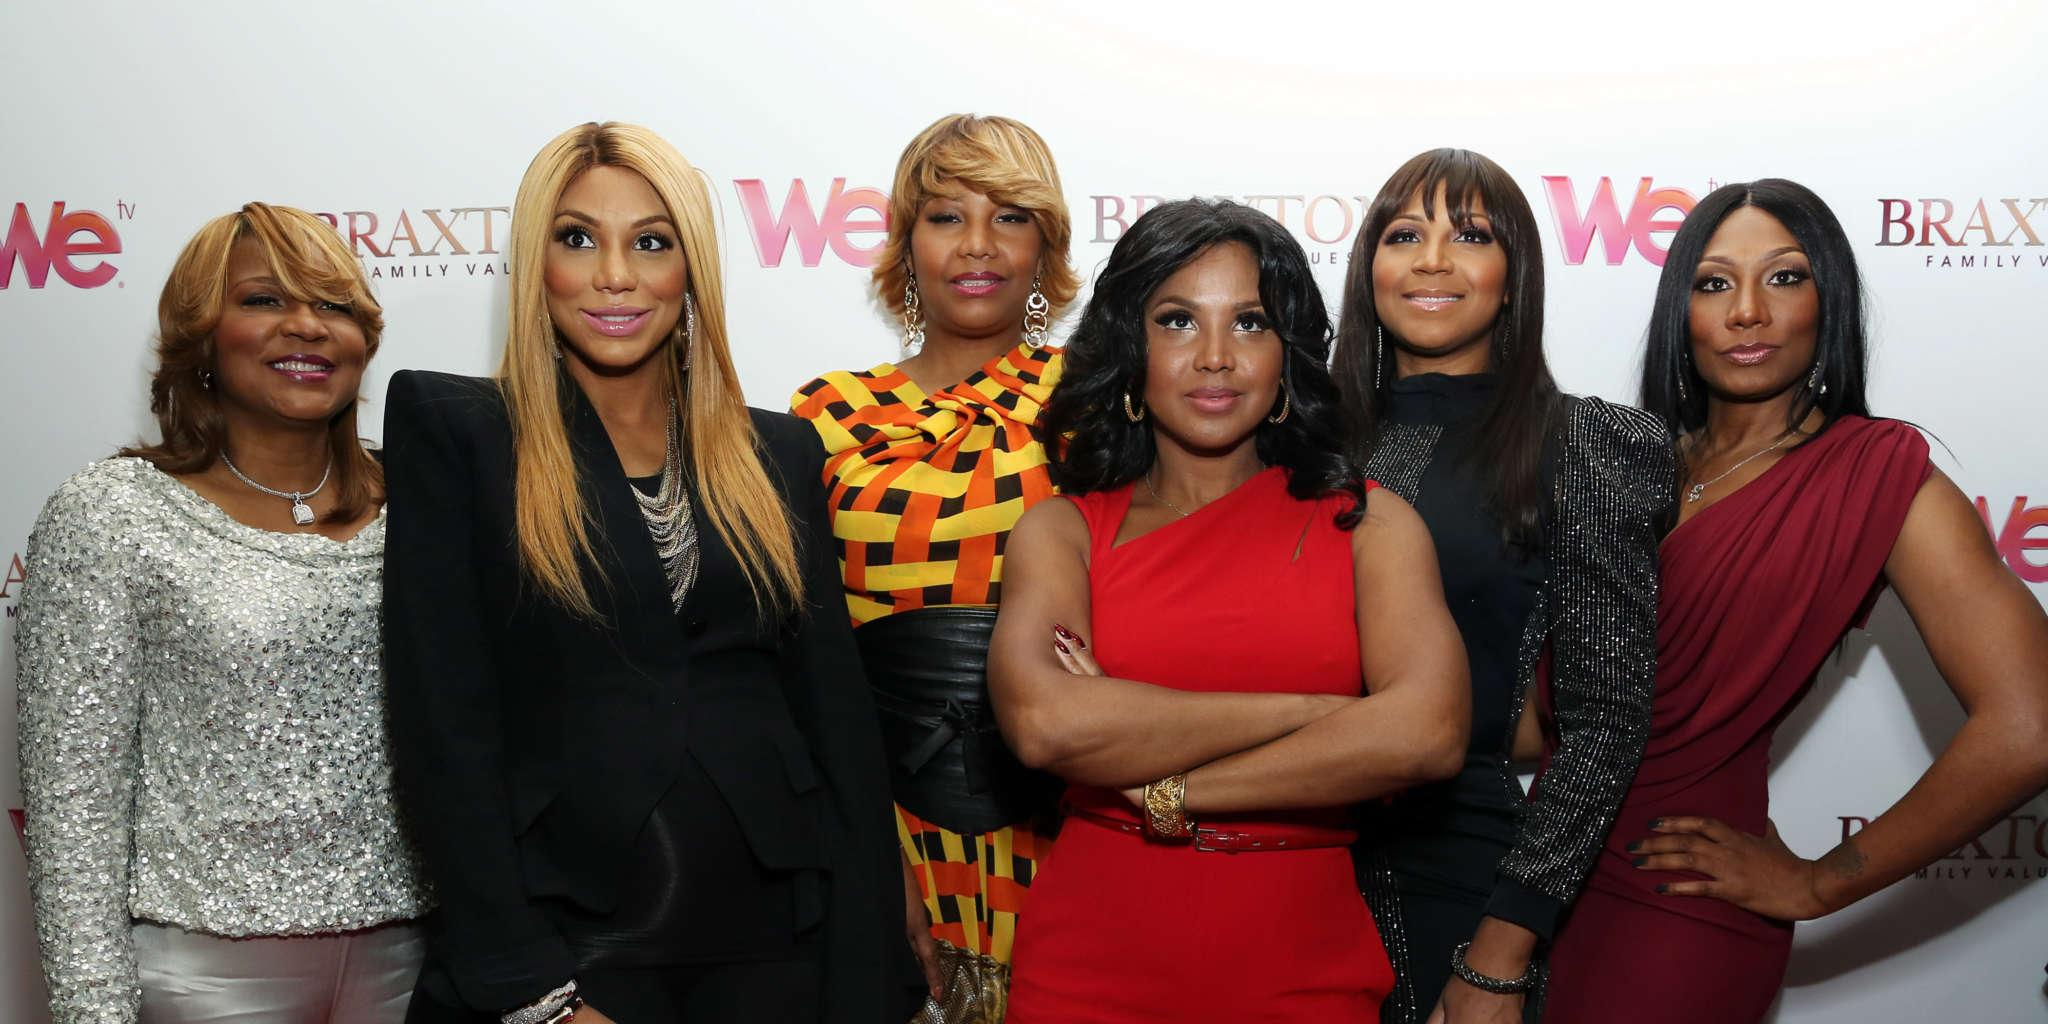 Braxton Family Values Extended Trailer Released: Fans Want The Family To Heal In Private